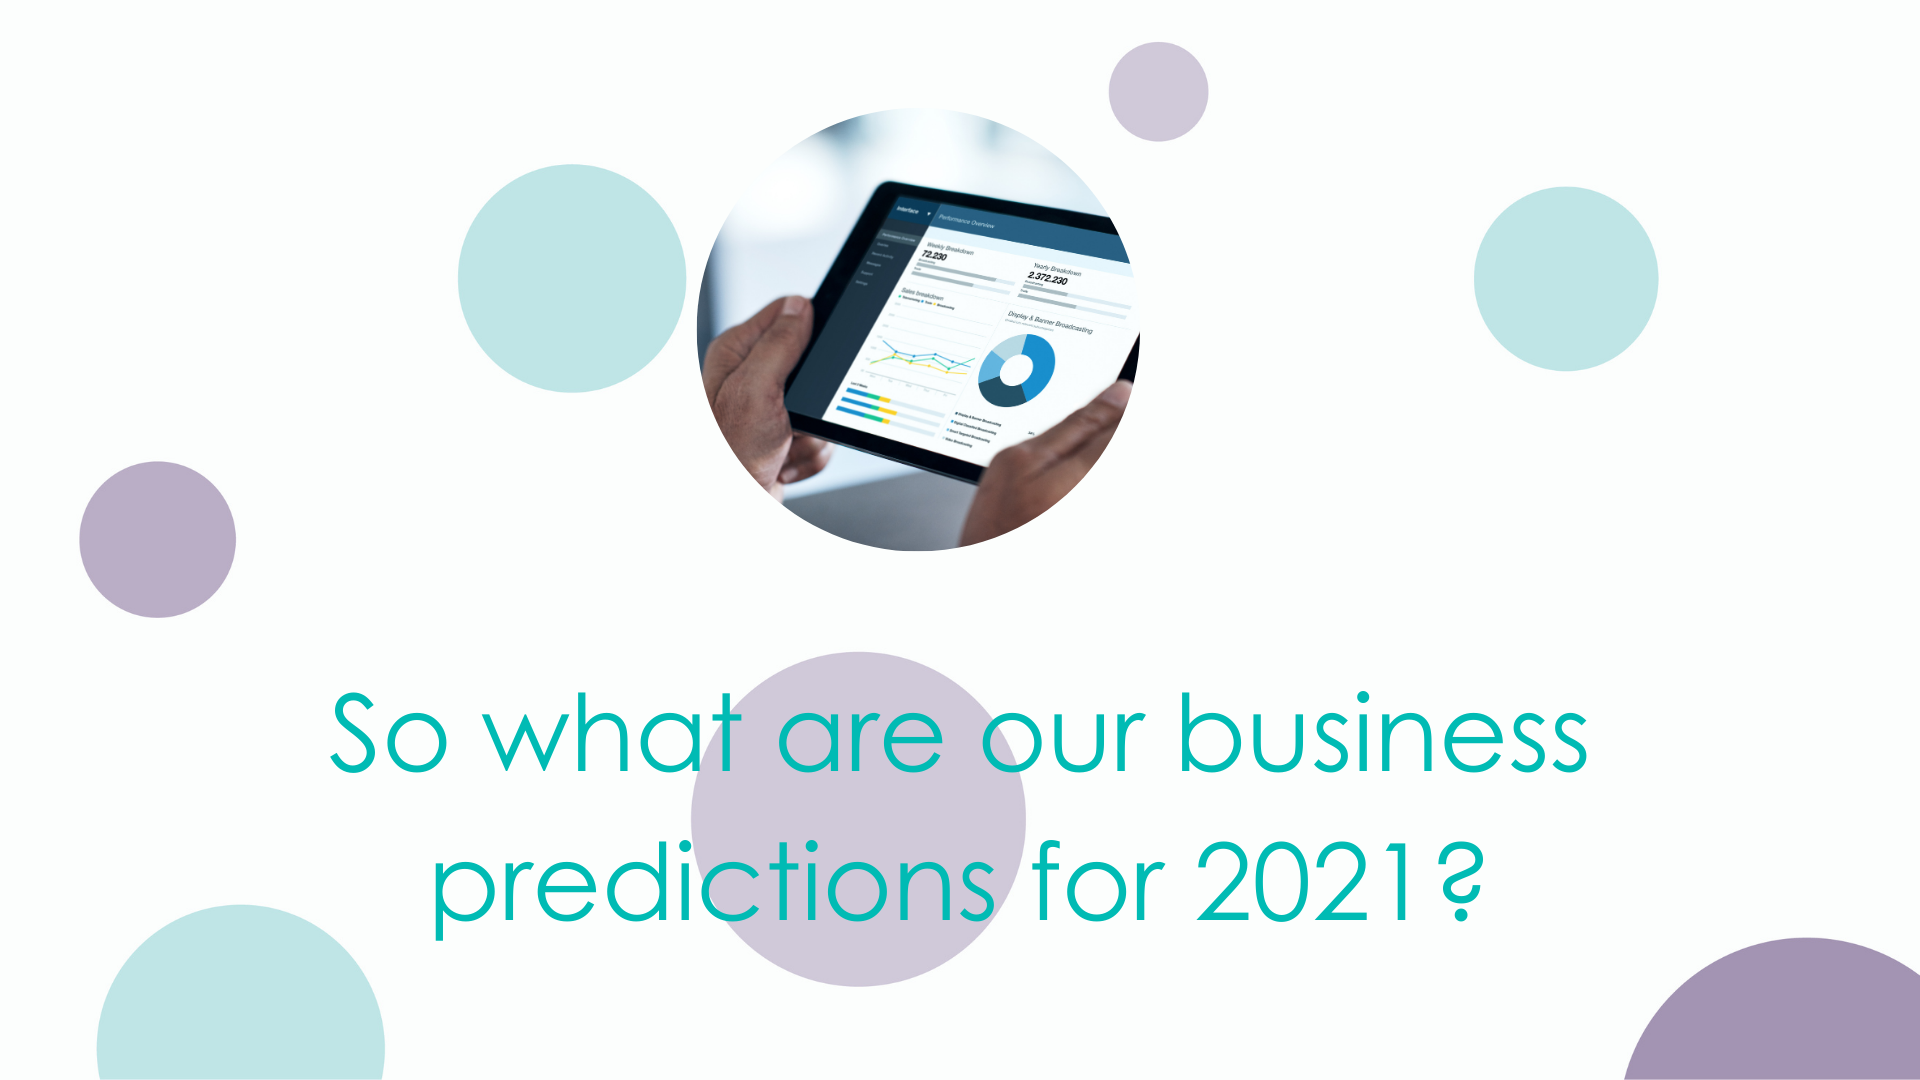 So what are ammu's business predictions for 2021?